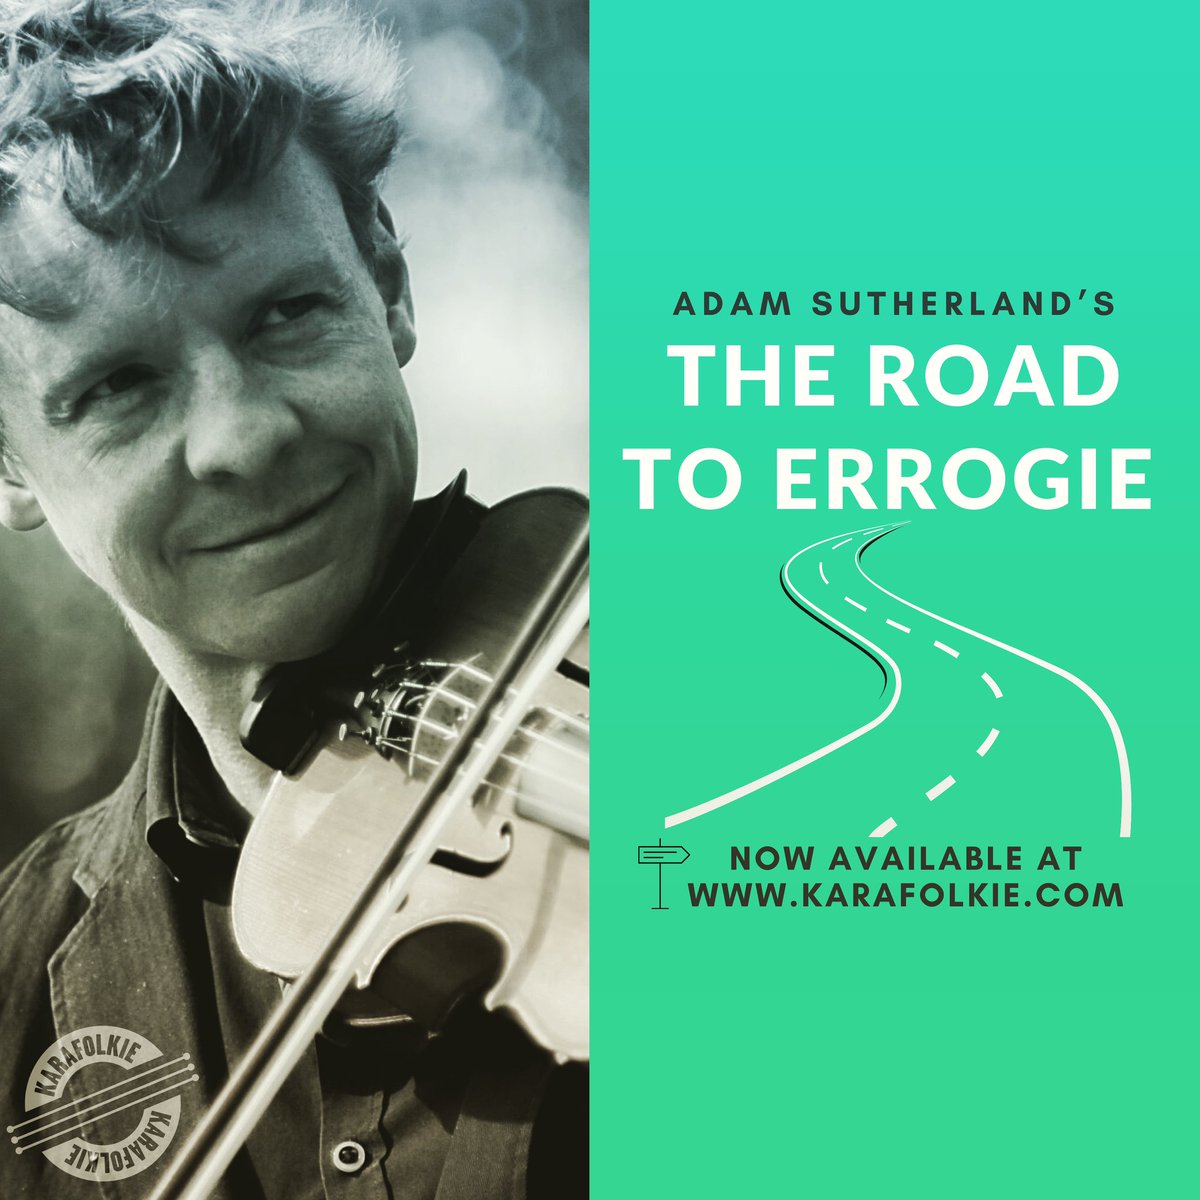 The Road to Errogie by @adamfiddle is now available on #Karafolkie in they keys of B & A!  Tune books are available from Adam's website, or a download from Karafolkie also includes guitar tab, mandolin tab & an audio guide. #karafolkie #newtunes #folkmusic #tradmusic #playathome